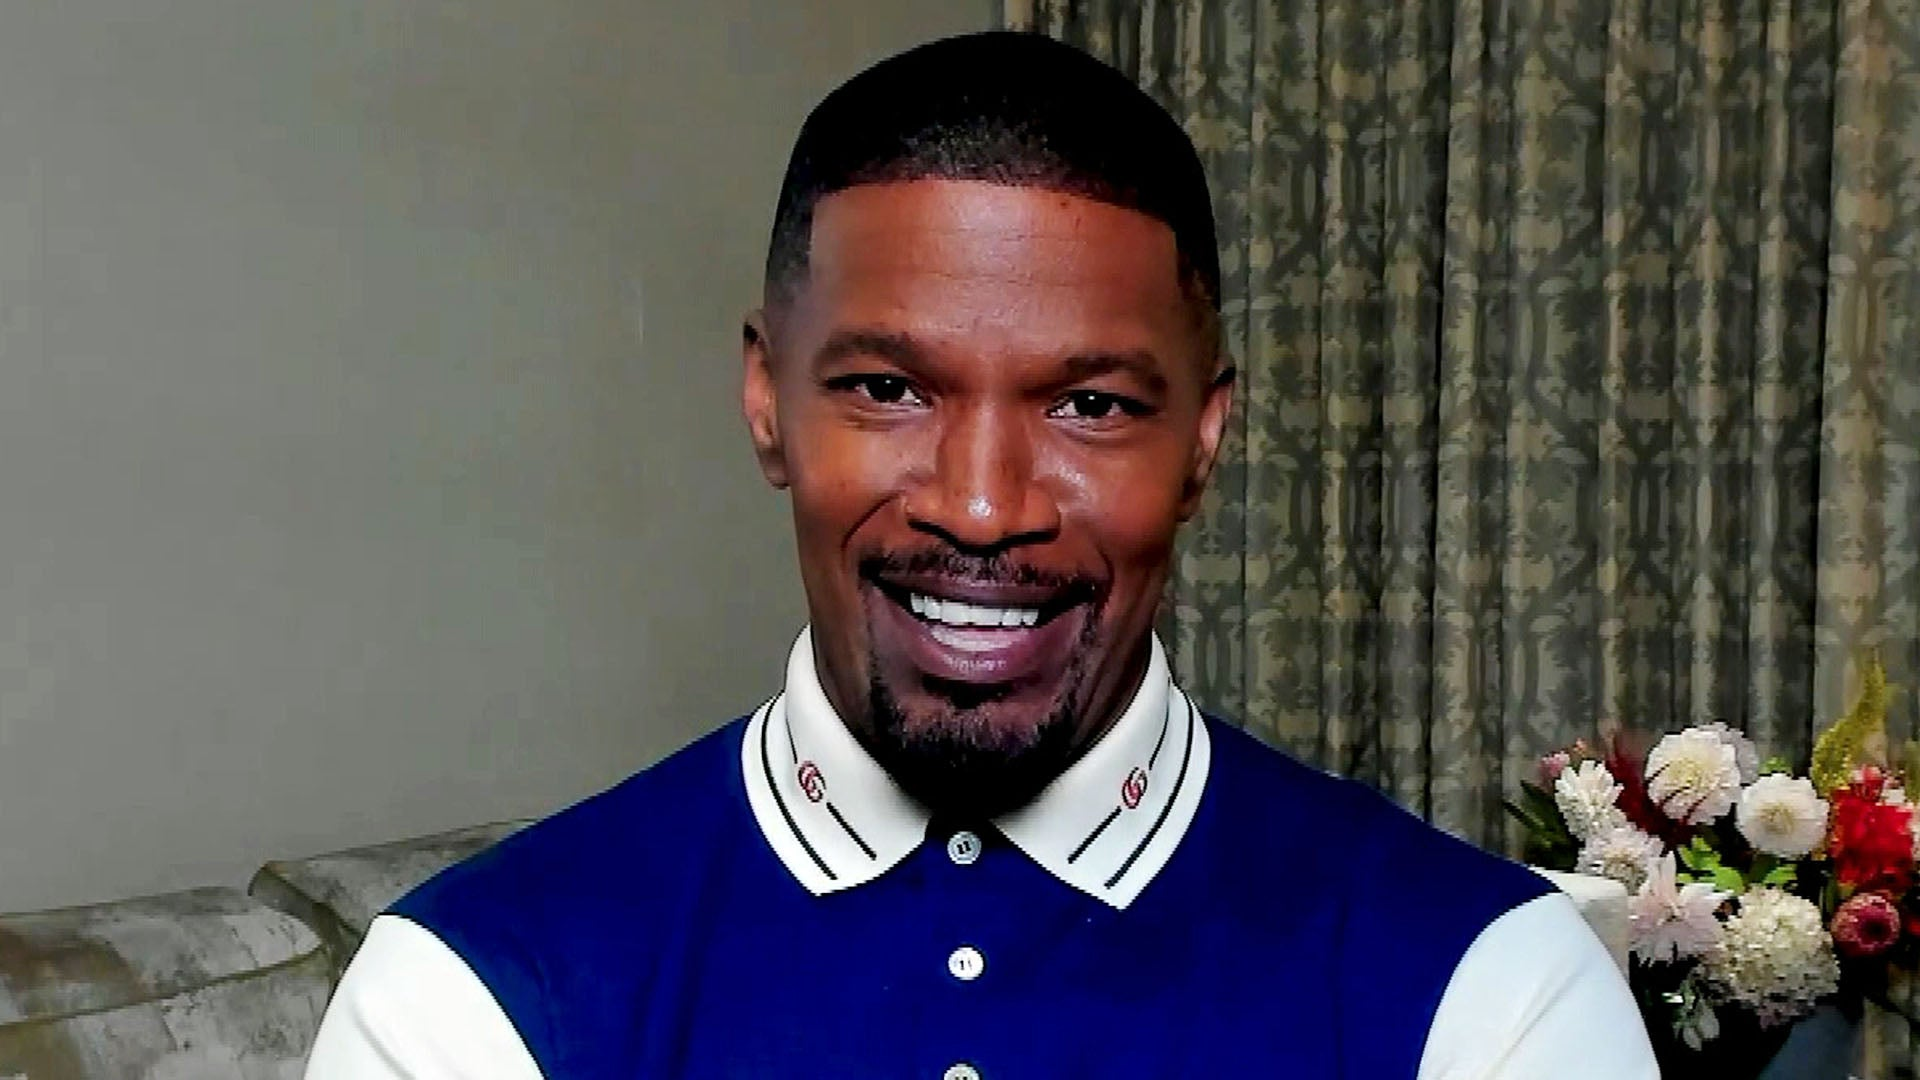 Jamie Foxx Opens Up About Bringing His Daughter to Hollywood Parties as a Child (Exclusive)